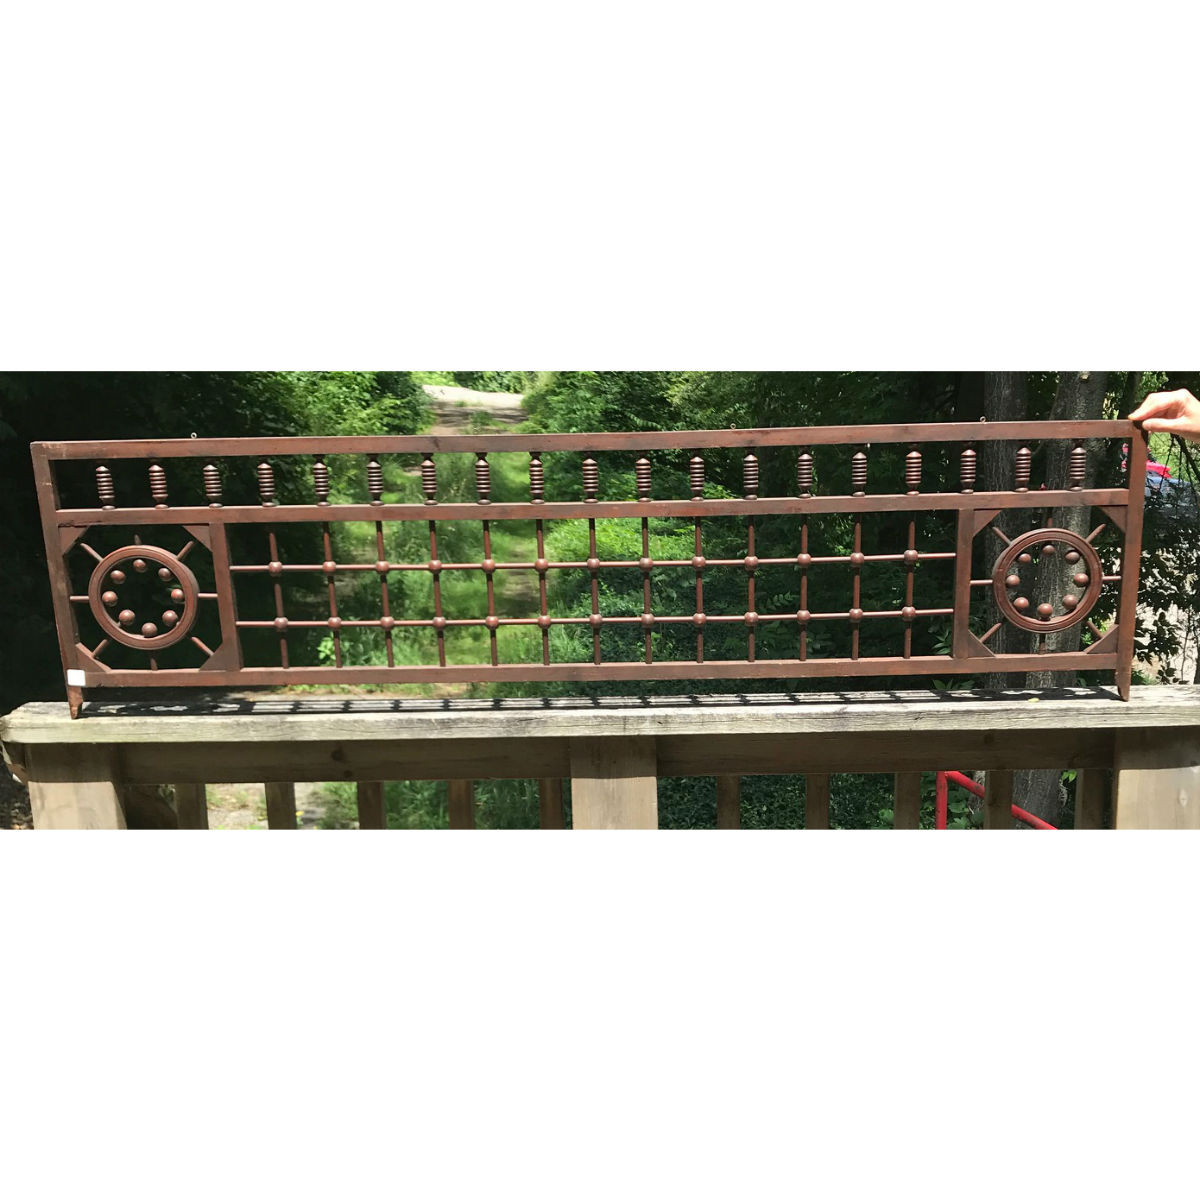 S18074 - Antique Victorian Cherry Fretwork